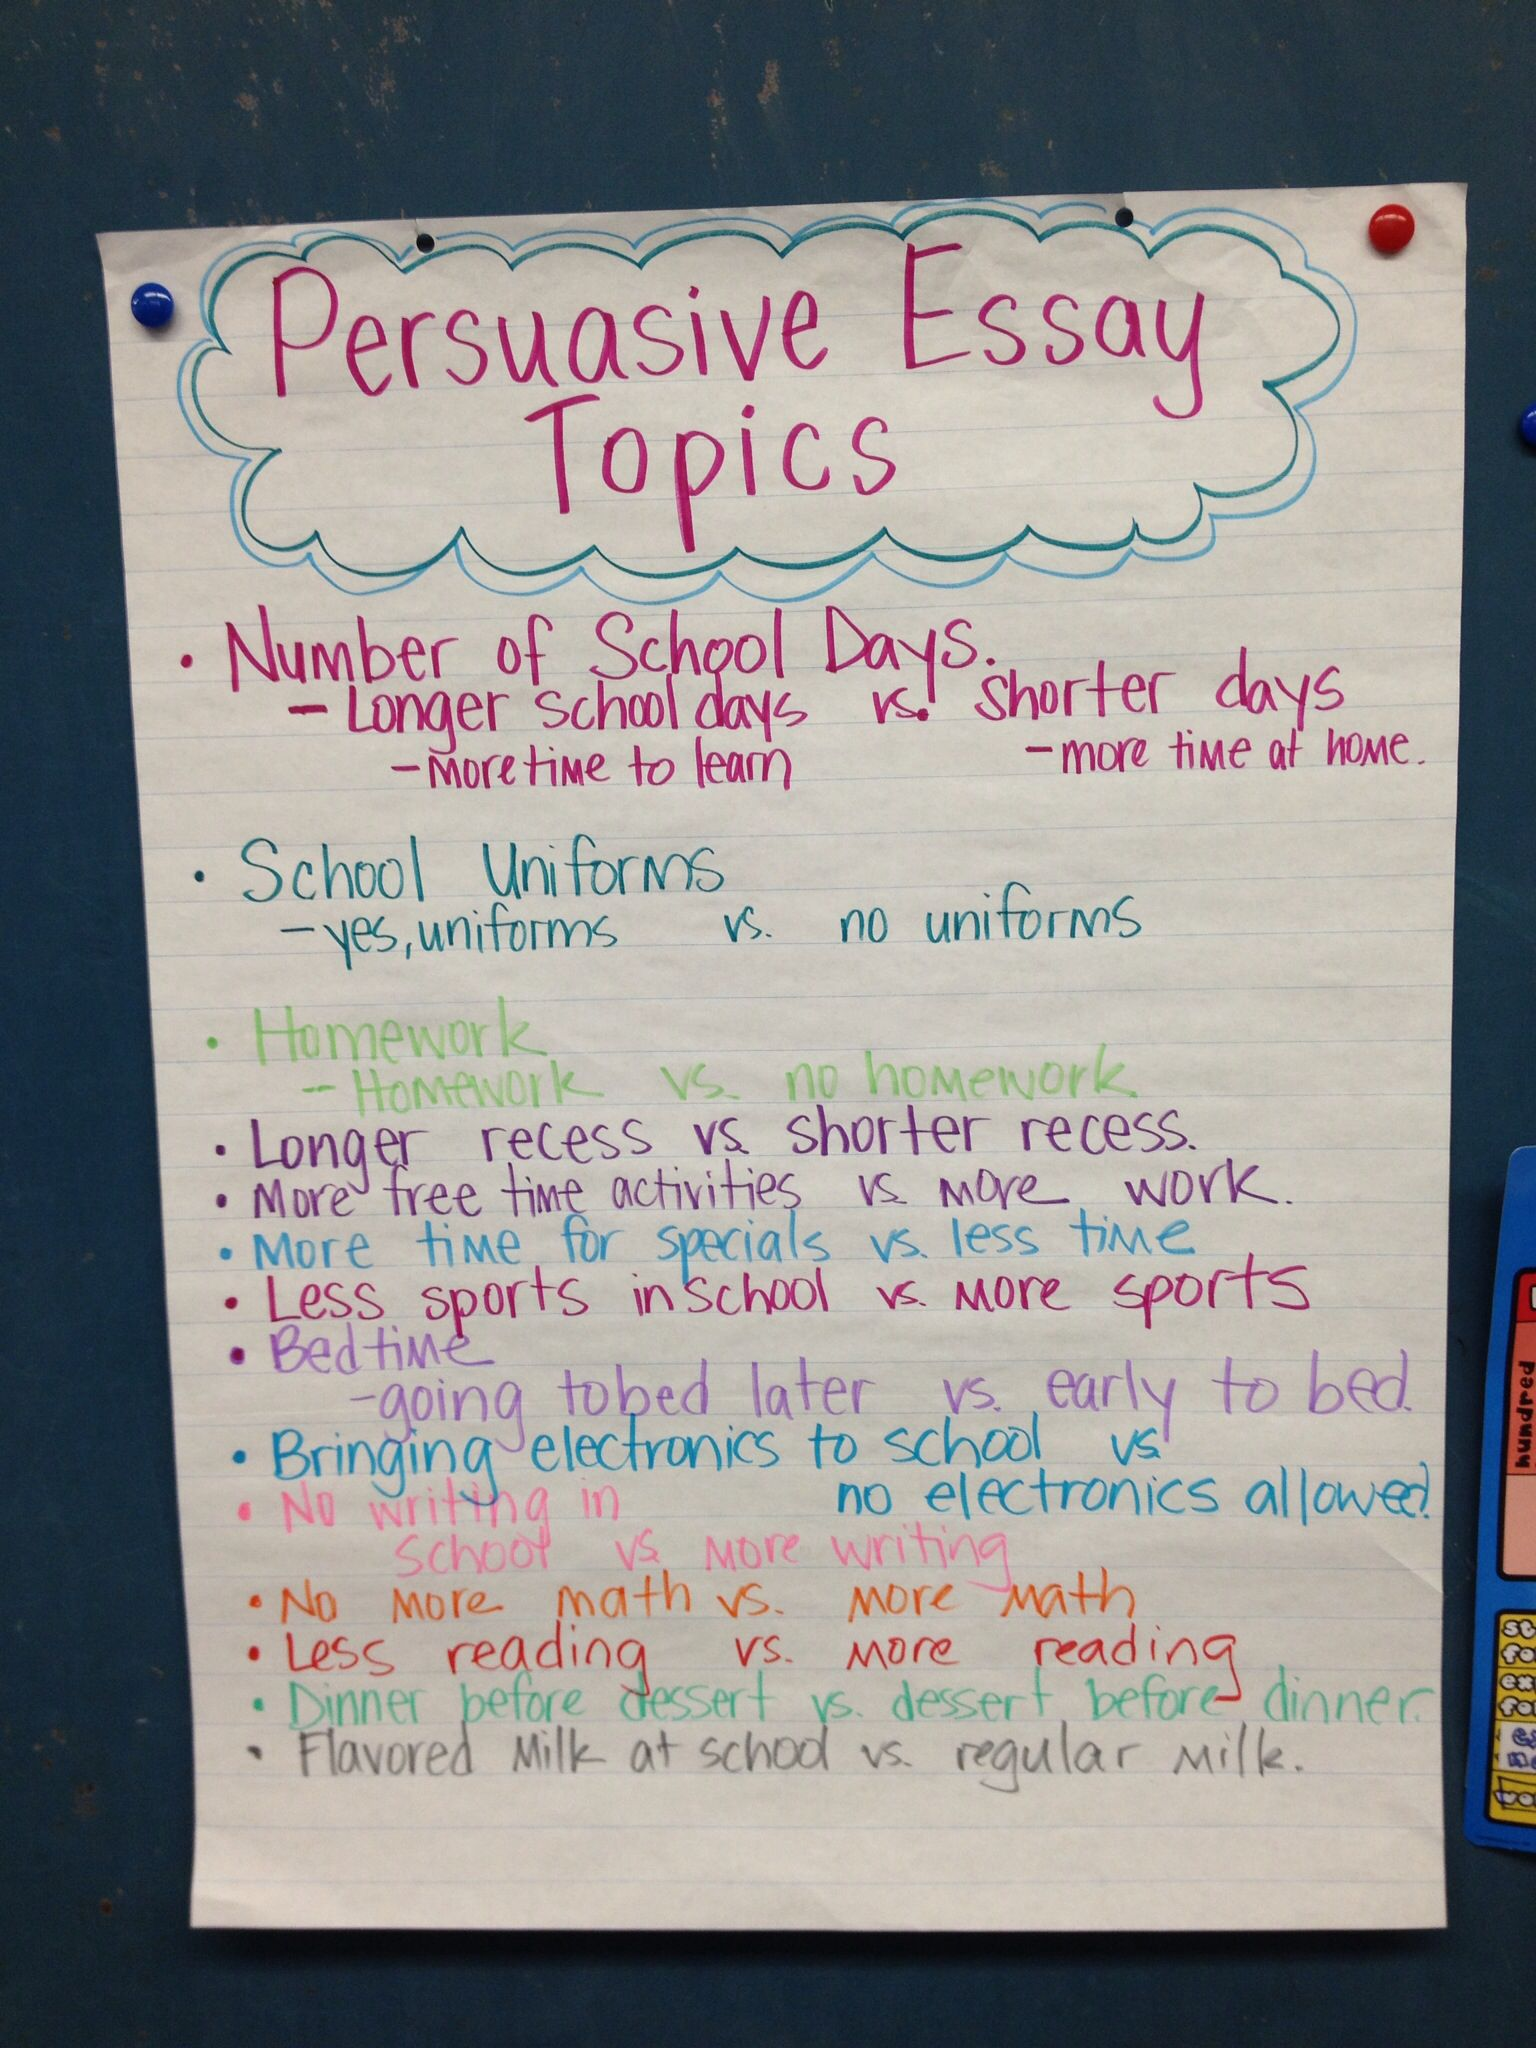 What Makes a Successful Argumentative Essay?